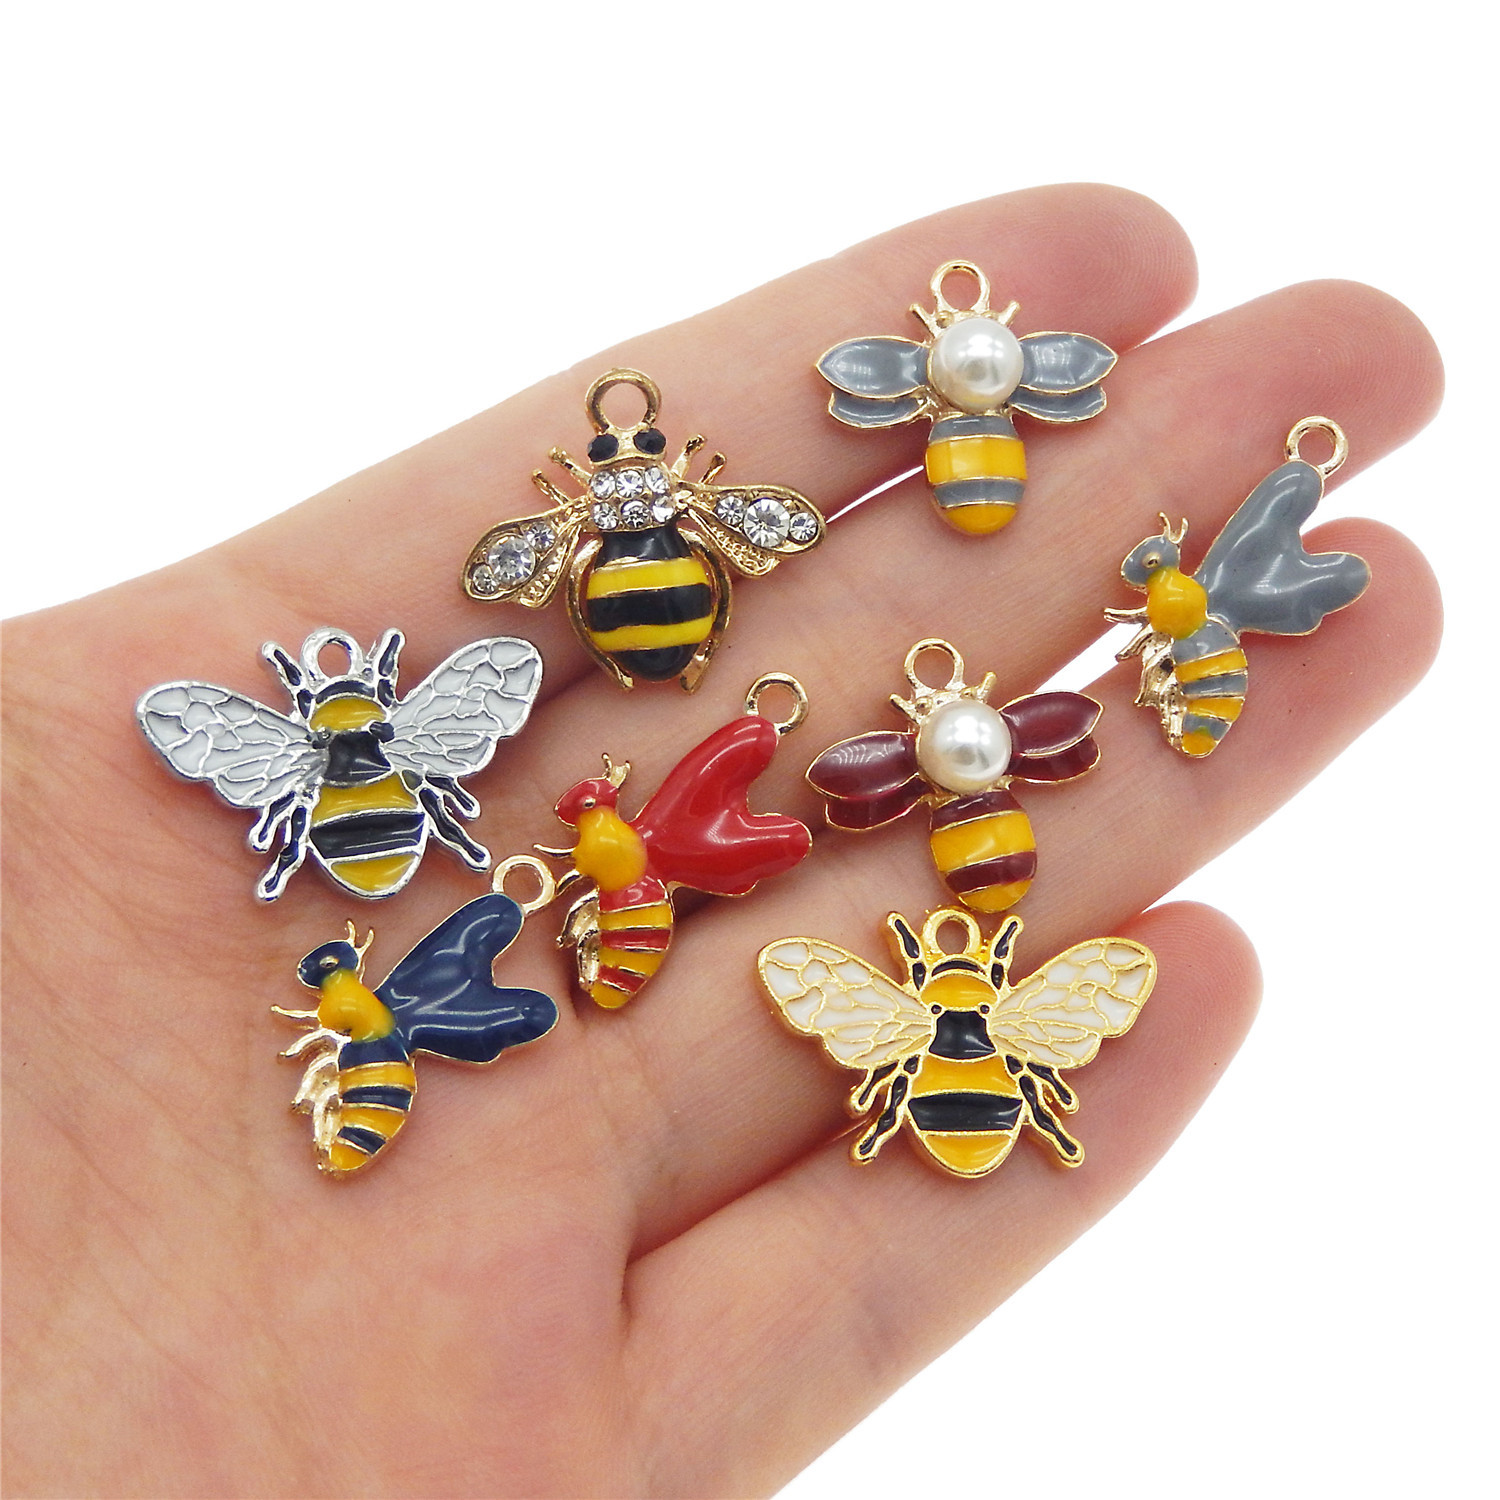 6 pcs Enamel Plated Mini Cute Honey Bee Look Metal Charms Pendants Findings